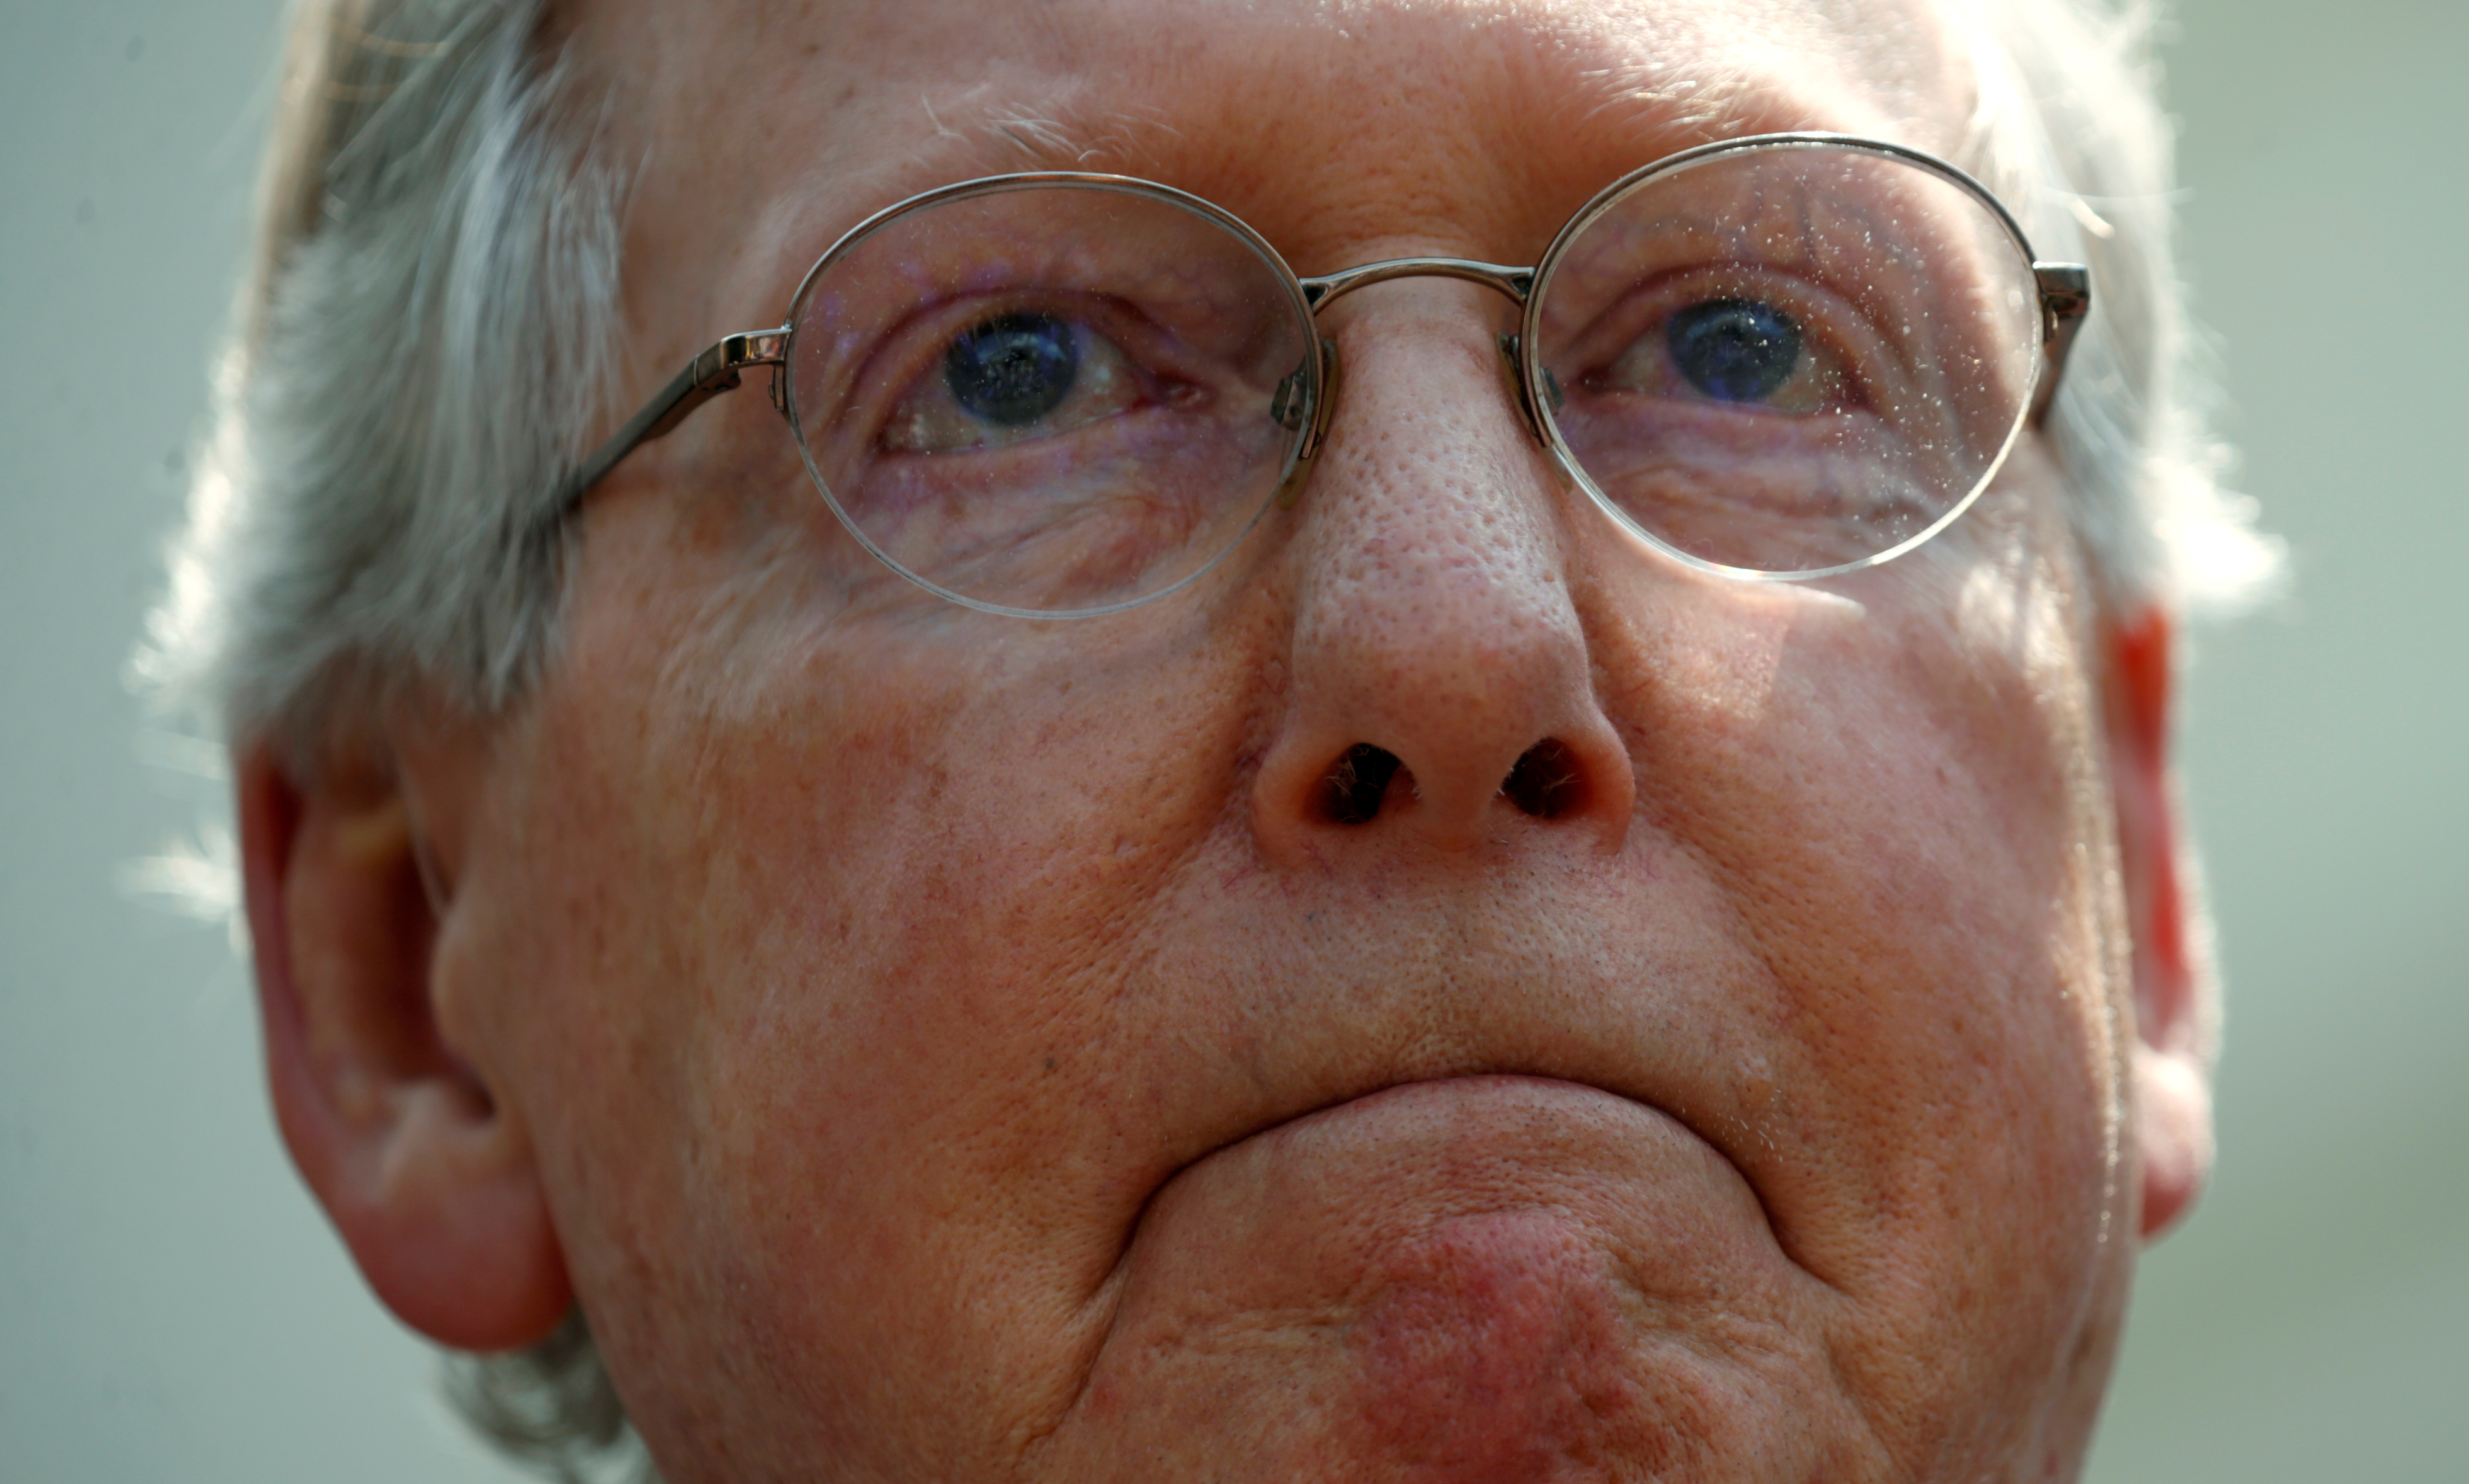 McConnell weighs in — 'There are no good neo-Nazis' — without mentioning Trump